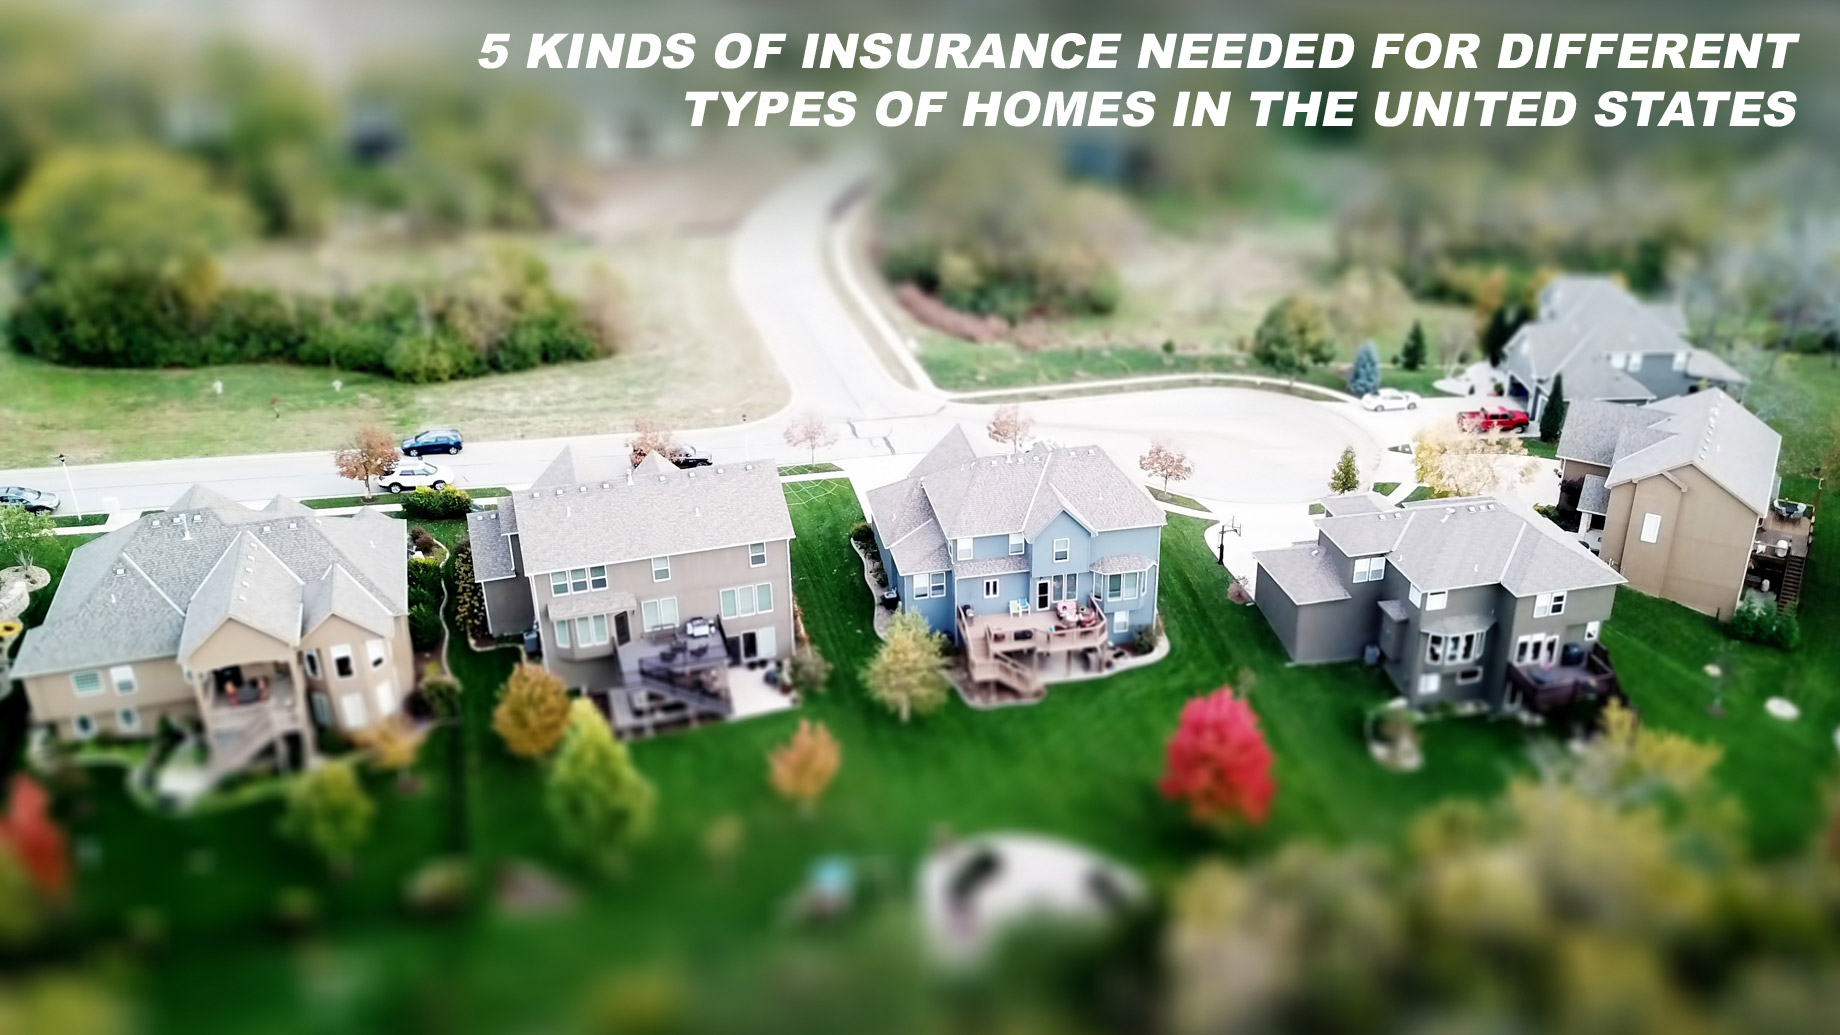 5 Kinds of Insurance Needed for Different Types of Homes in the United States